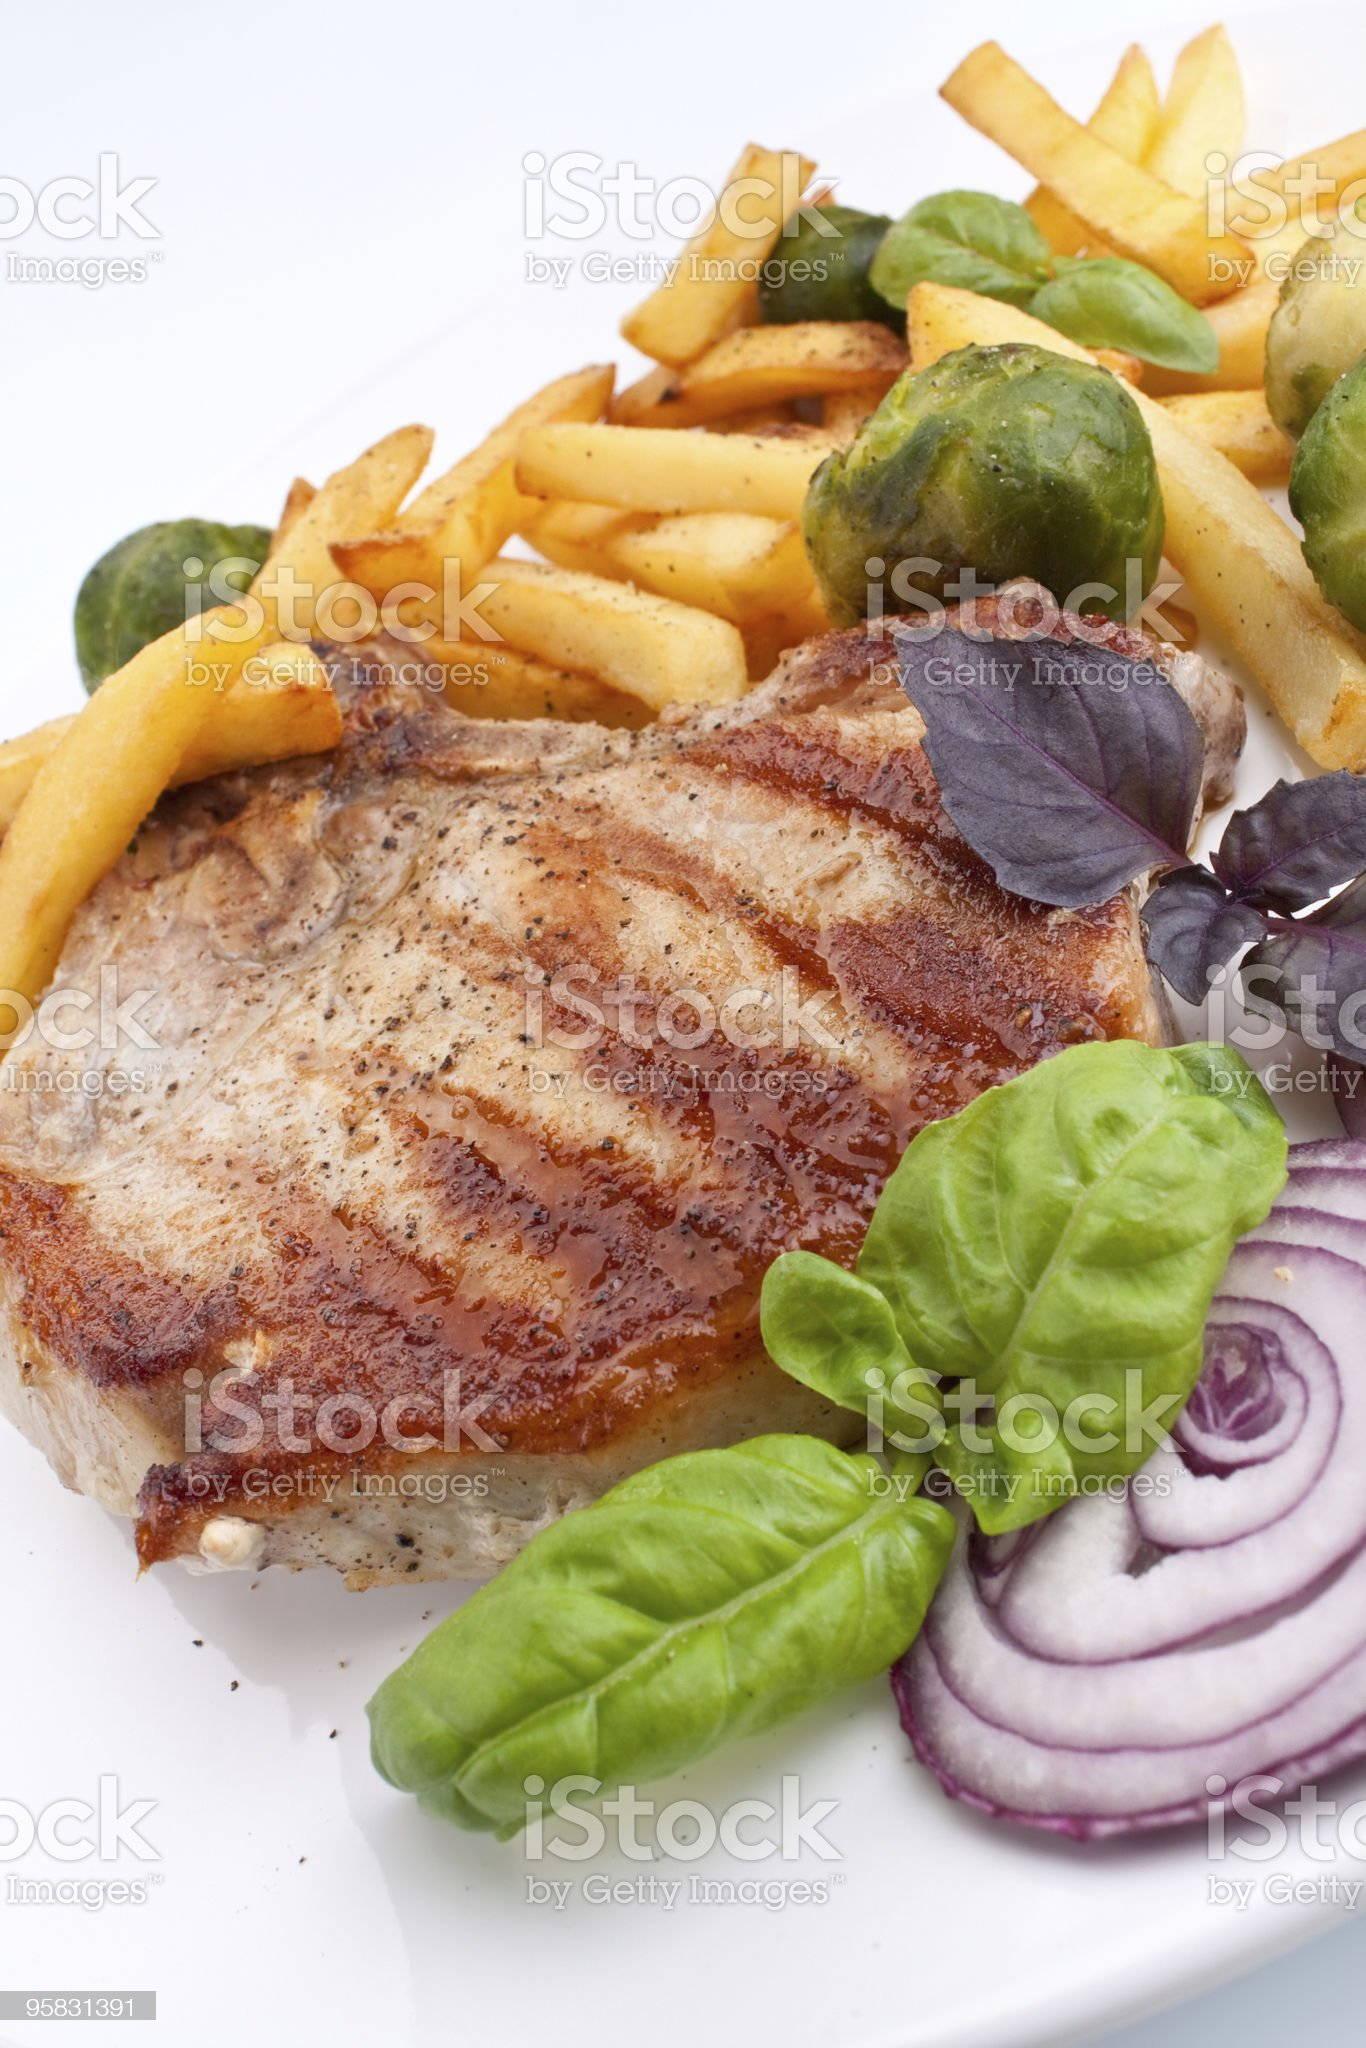 pork chops with fries and brussels sprouts royalty-free stock photo